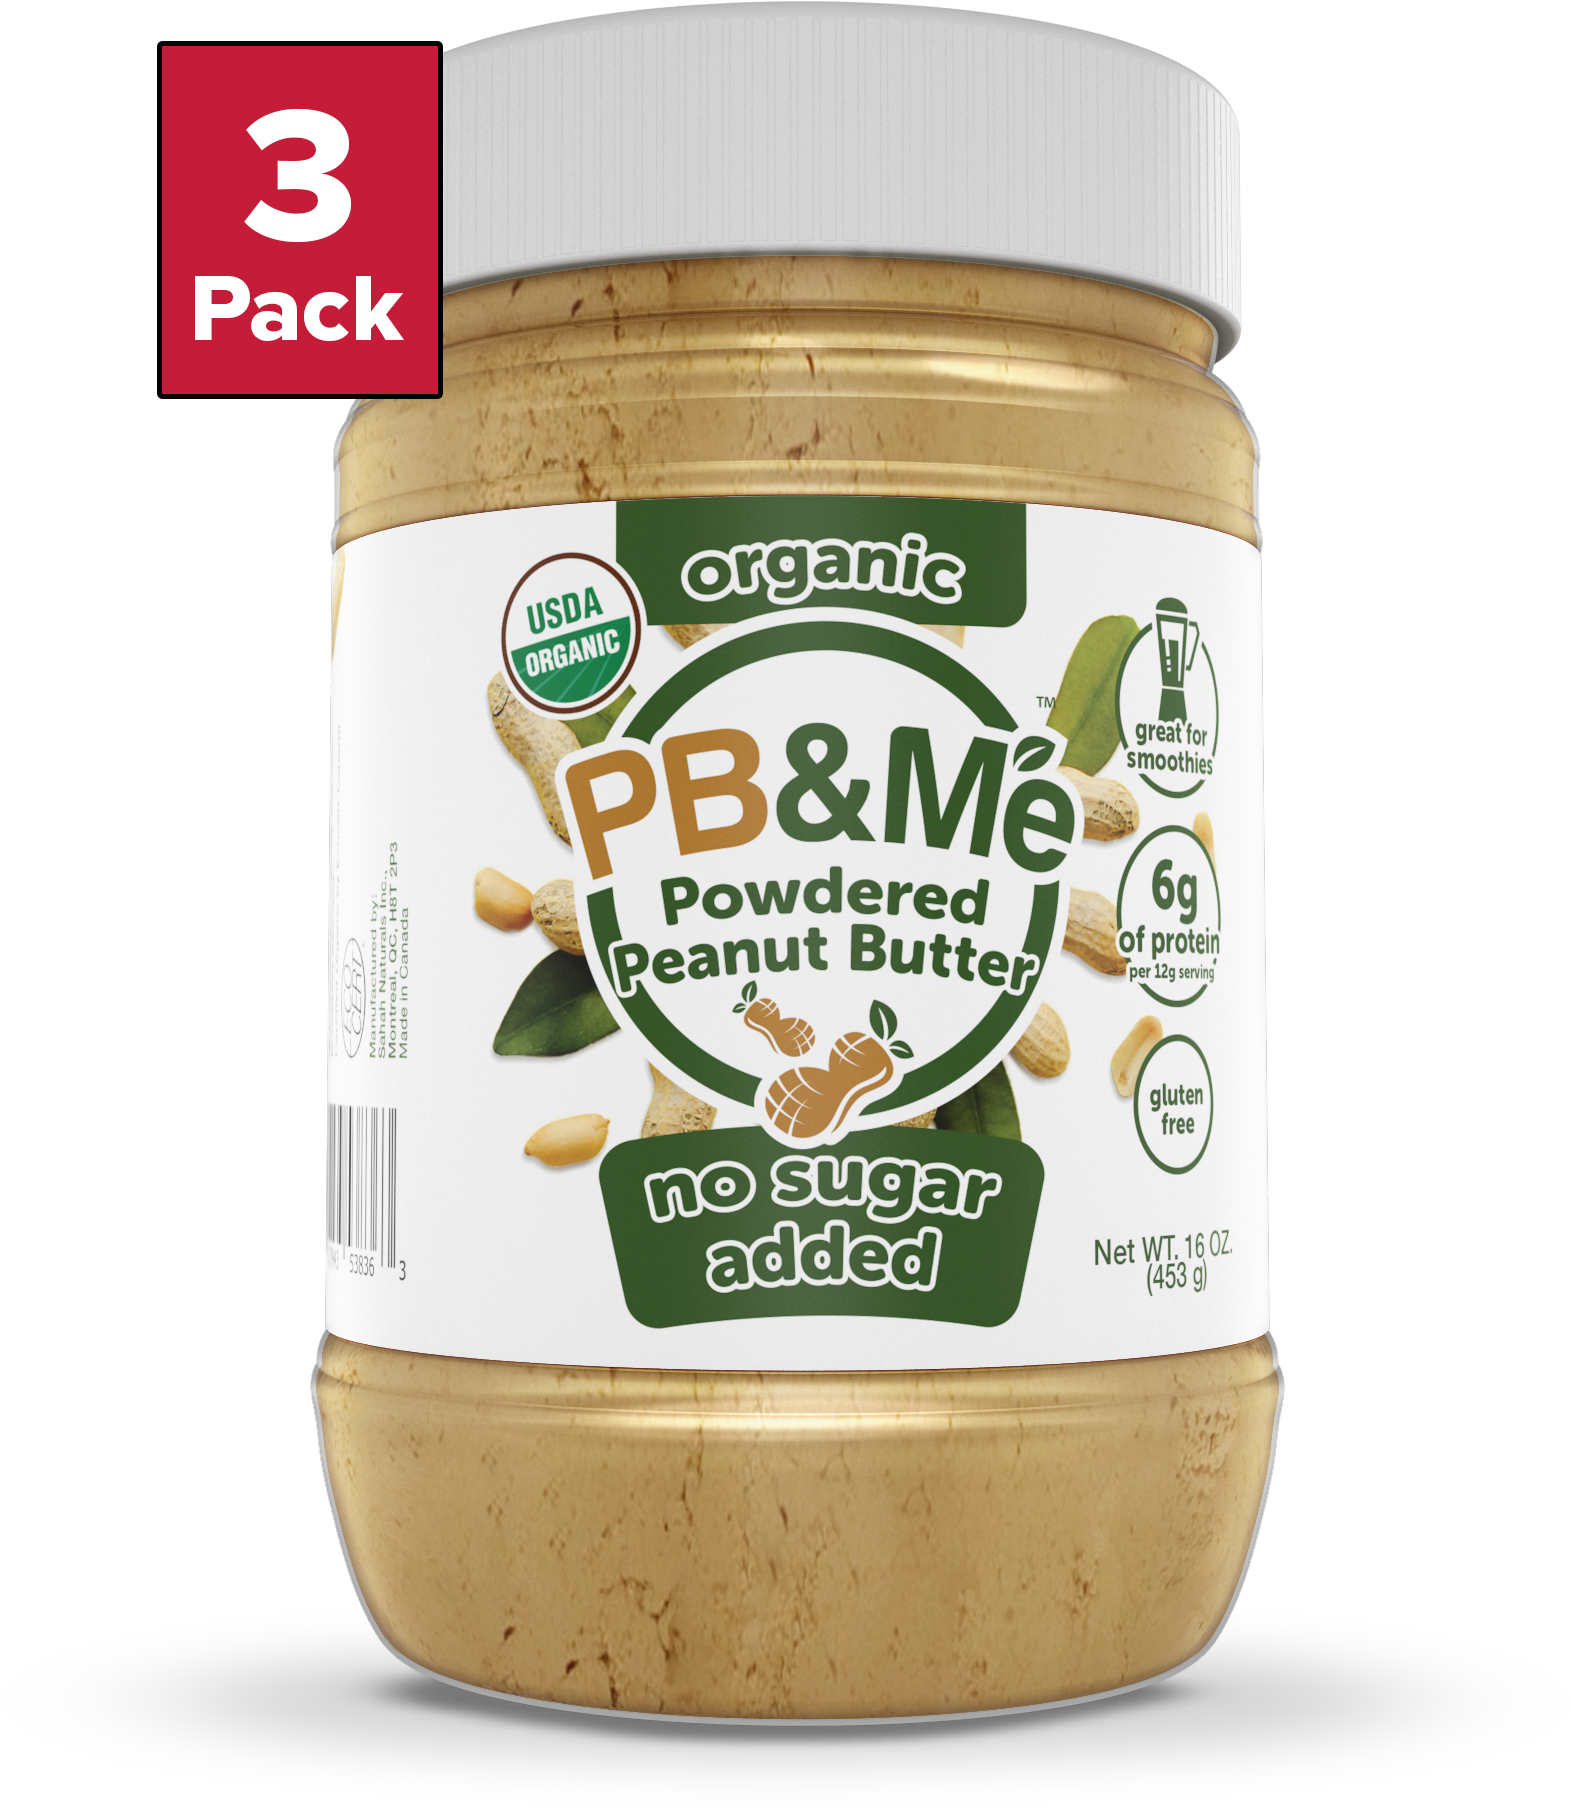 Organic Powdered Peanut Butter, No Sugar Added (16oz)